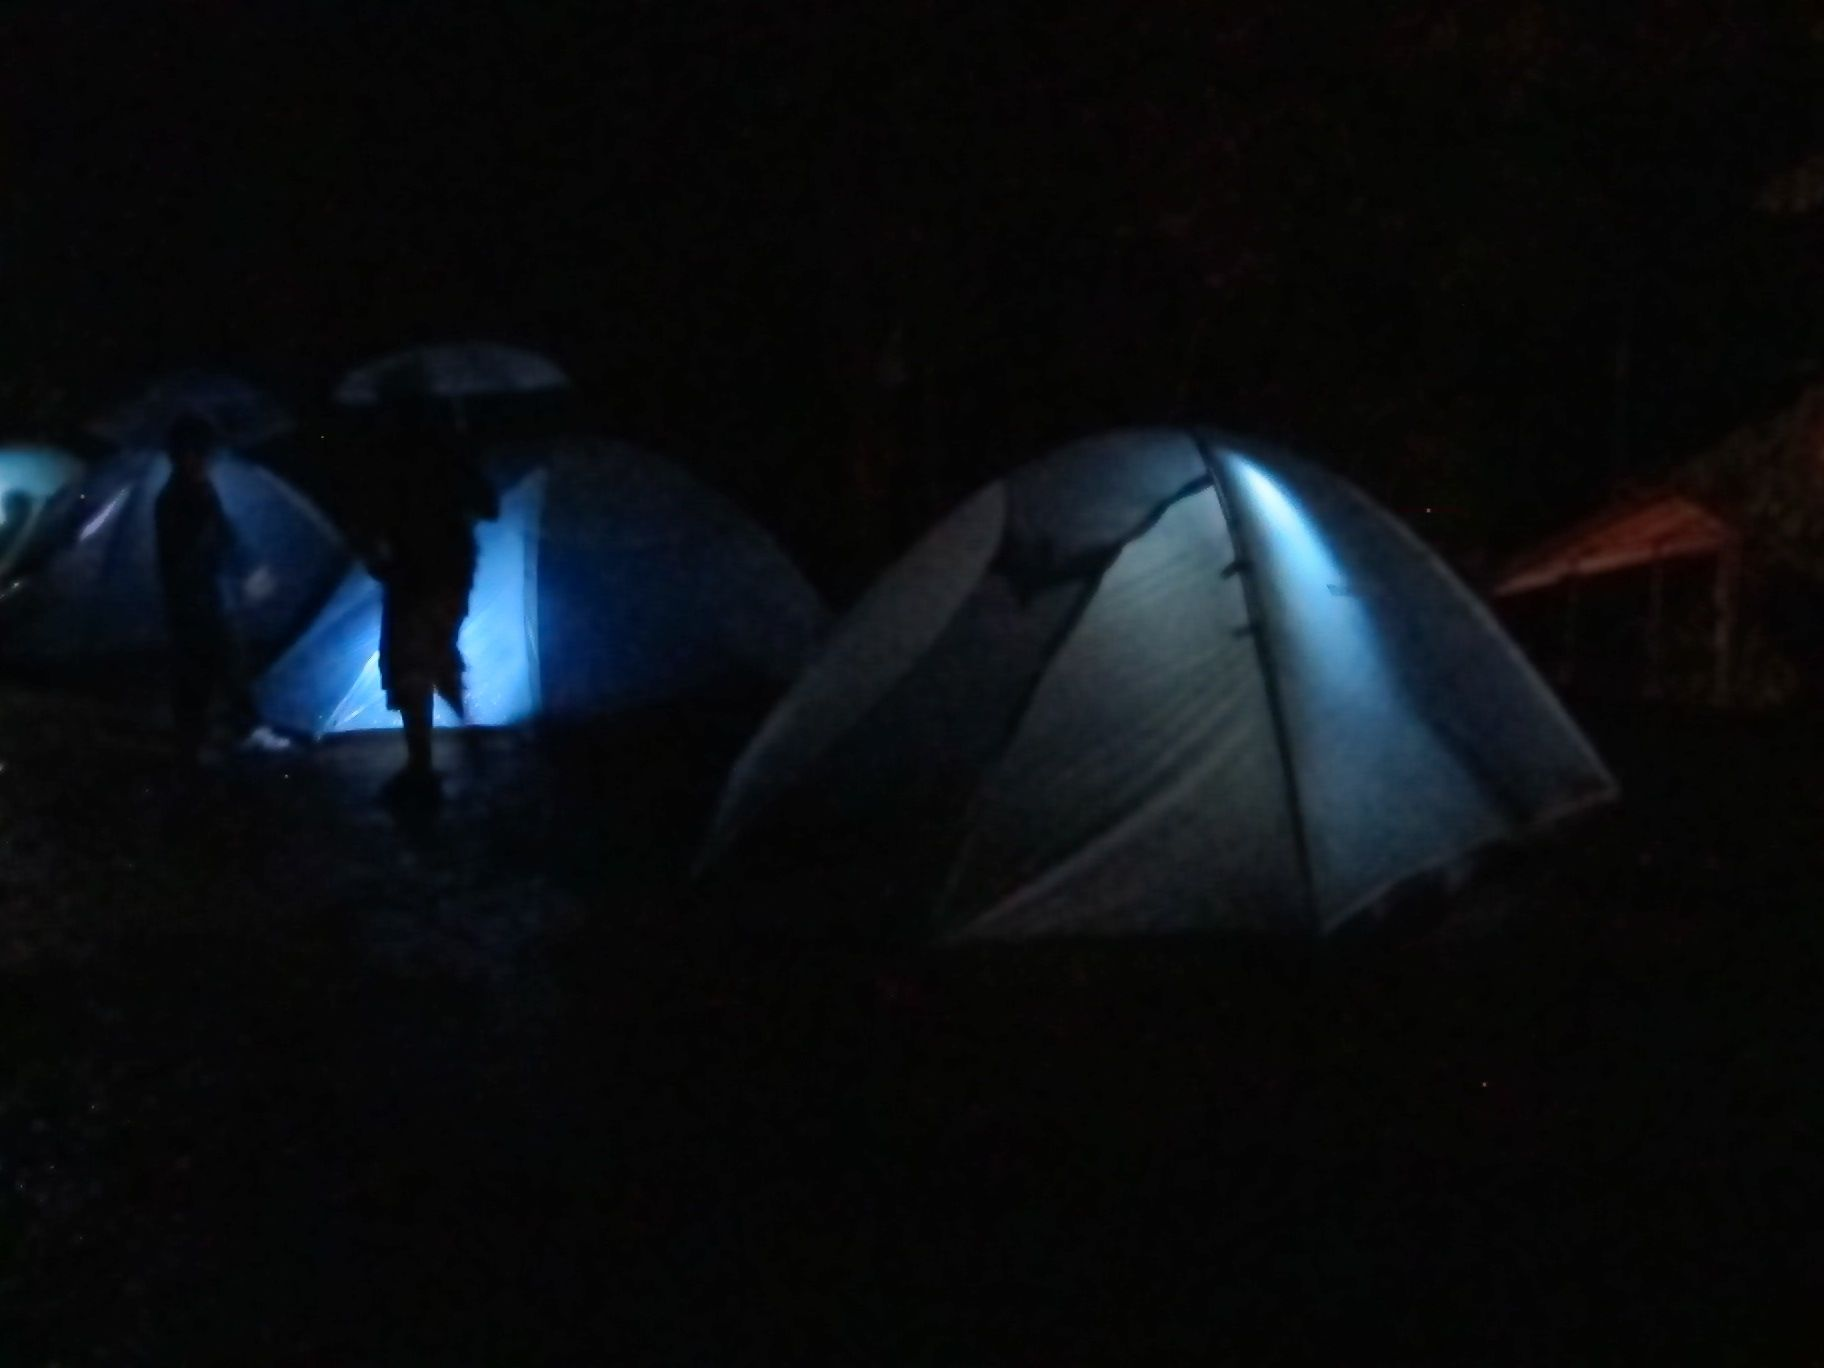 tents are so cool at night!